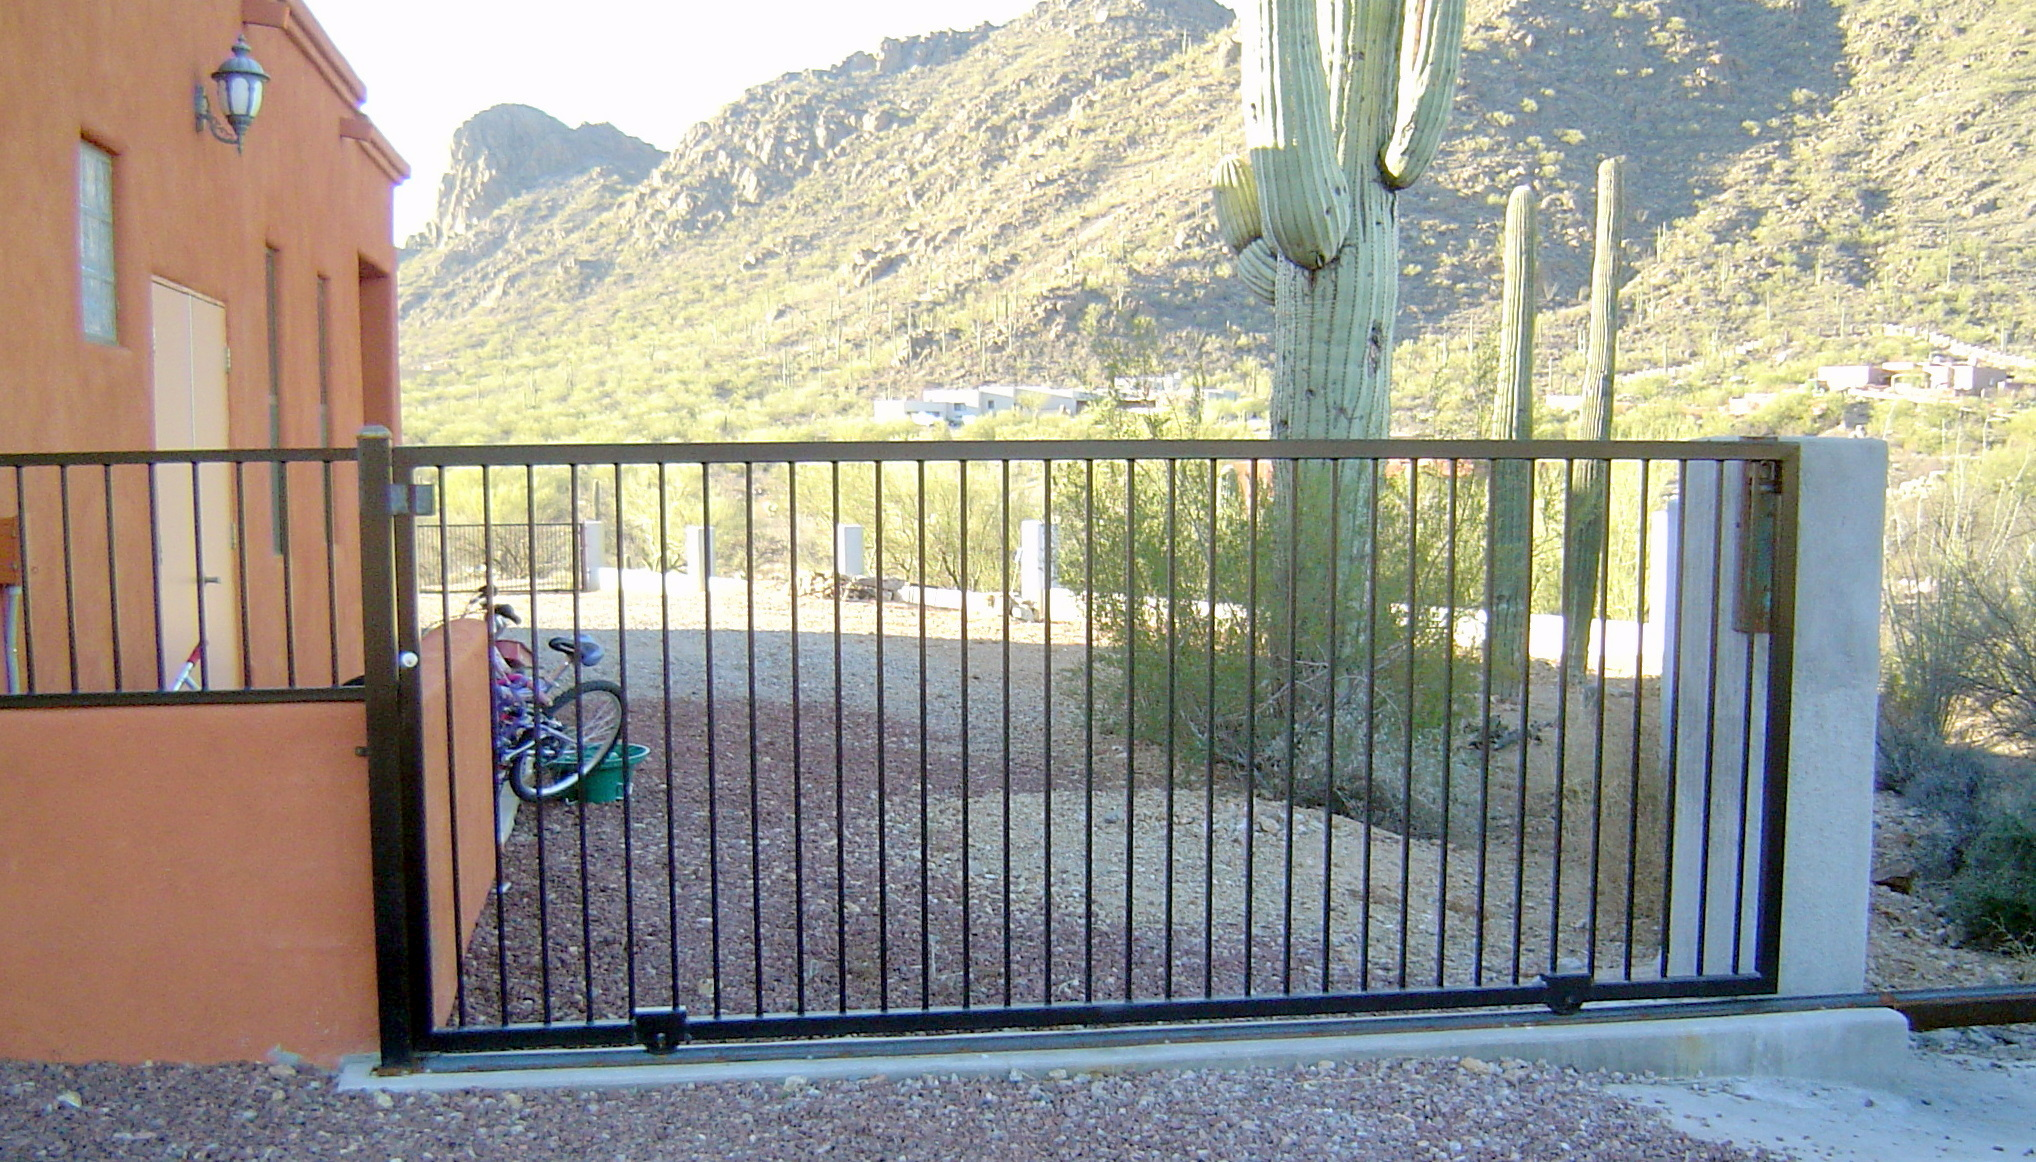 Fireplace Photos Drive Gate On Guide Rail - Ironcraft In Az